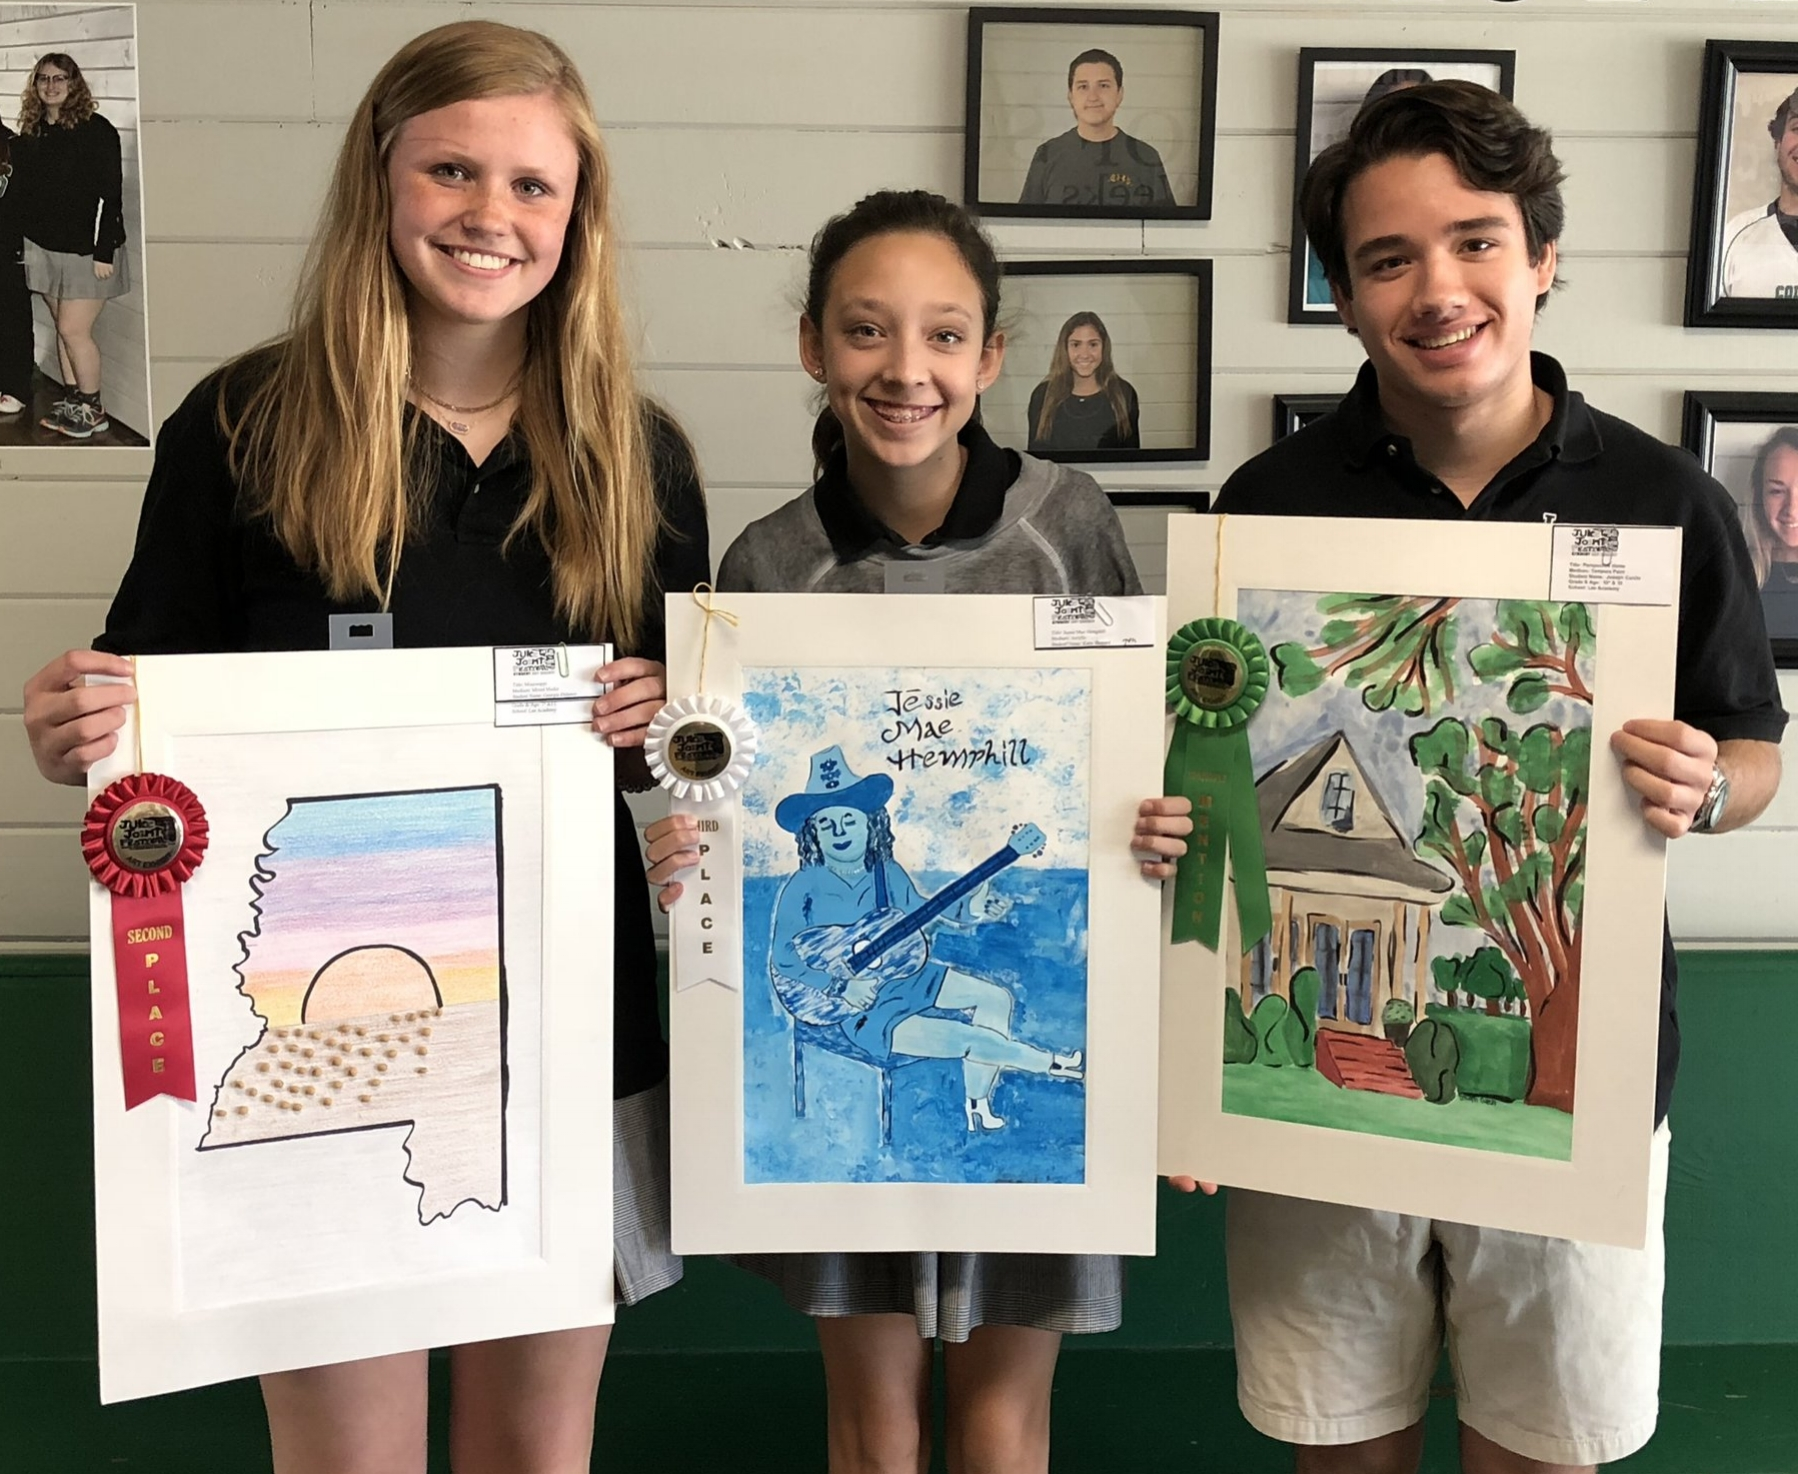 Left to Right: 7th Grade - 2nd Place, Georgia Dulaney; 7th Grade - 3rd Place, Katie Sherard; and 10th Grade - Honorable Mention, Joseph Curcio